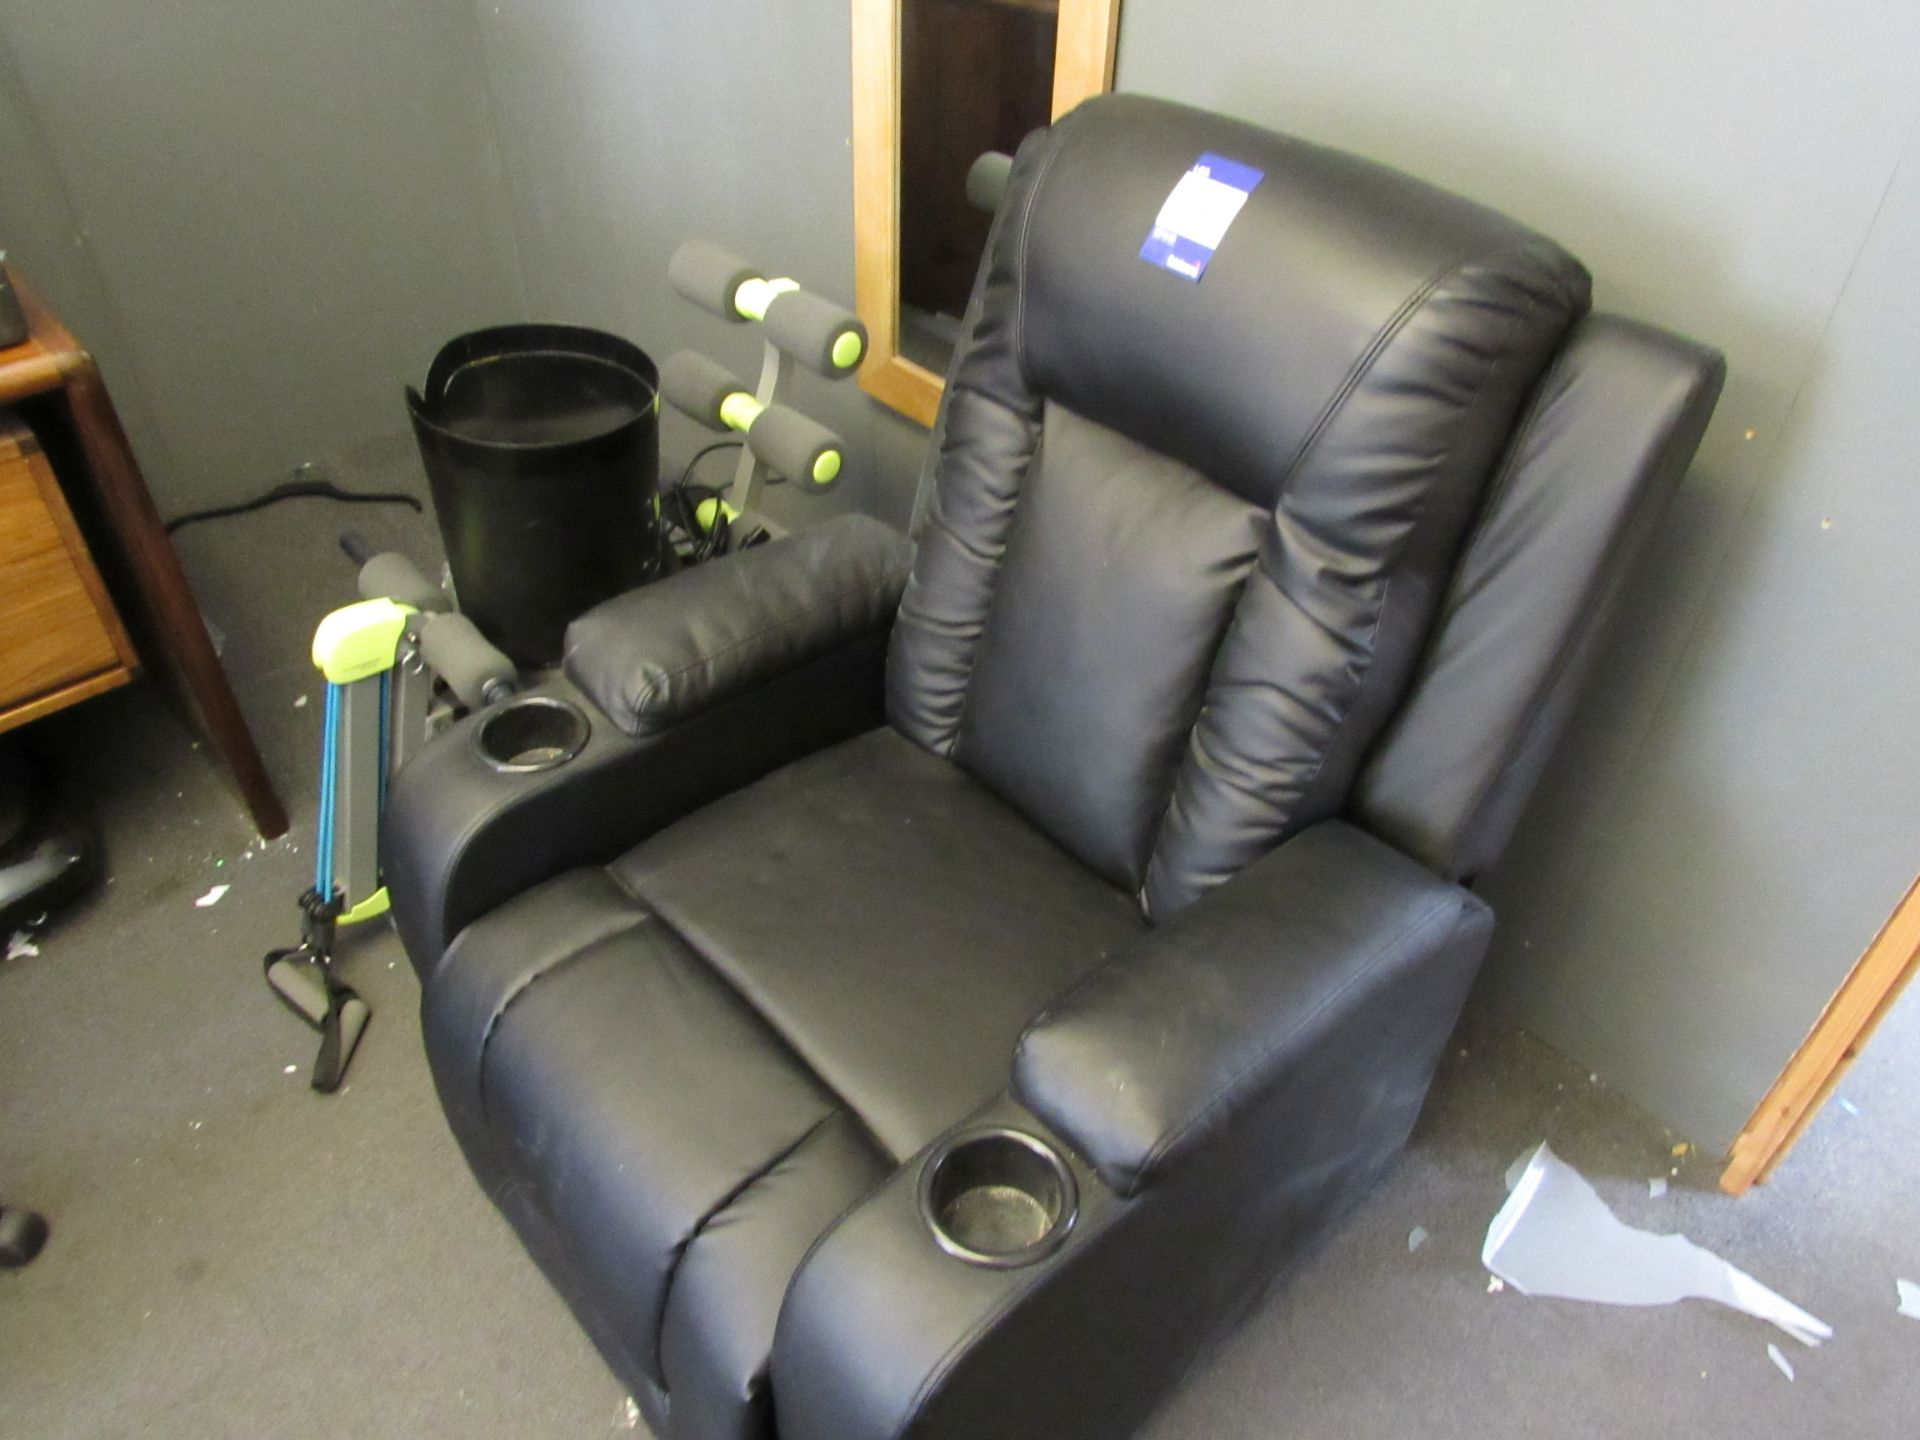 Leather effect 'Lazy Boy' style armchair